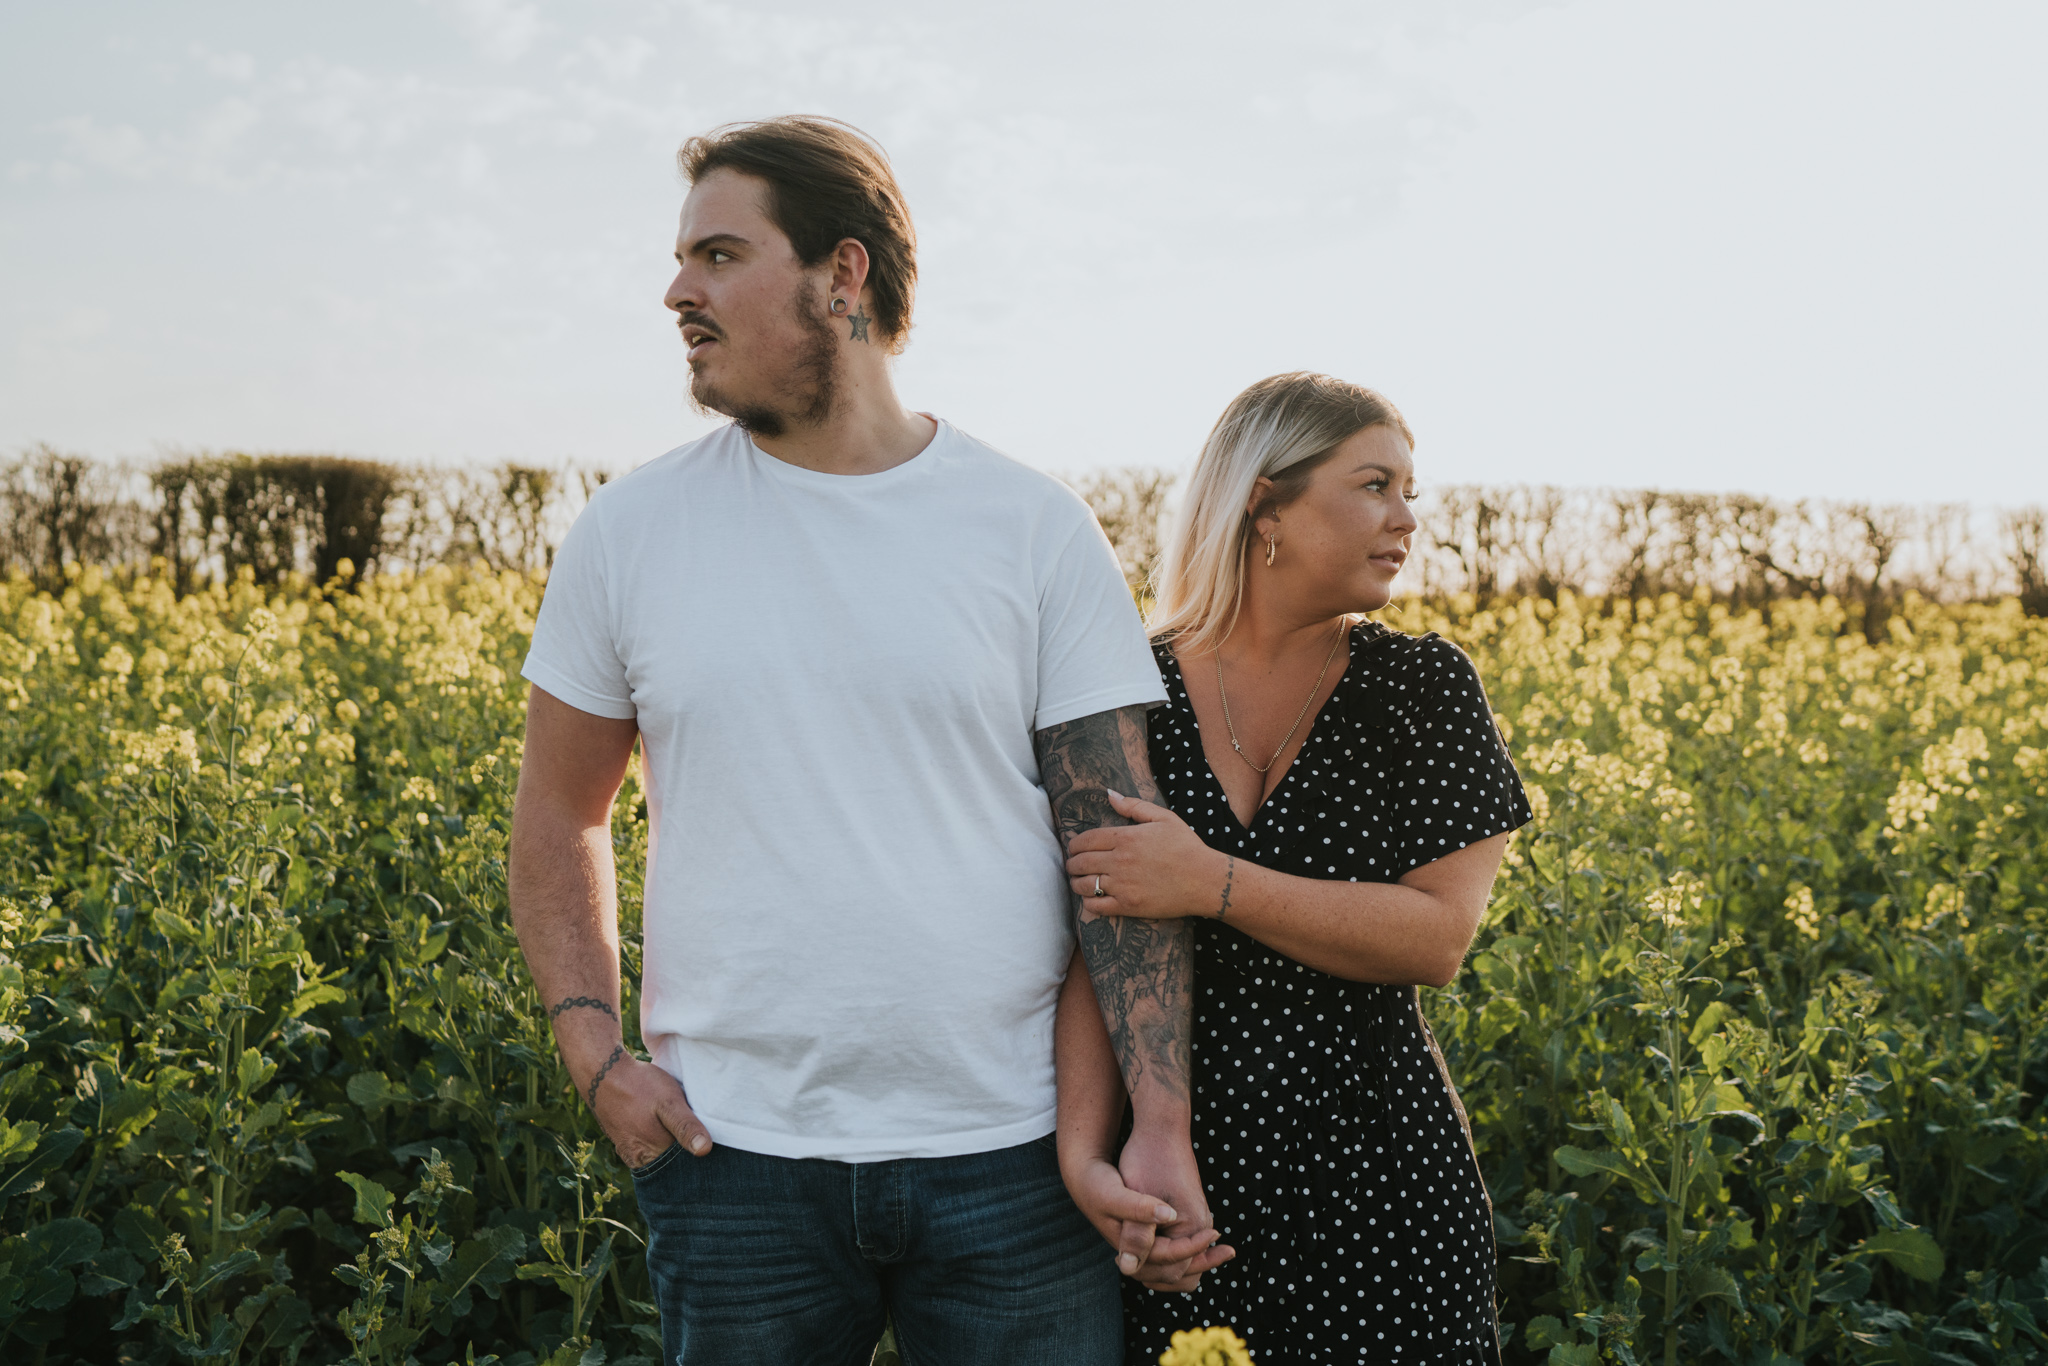 chloe-dan-pre-wedding-engagement-session-countryside-grace-elizabeth-colchester-essex-alternative-wedding-lifestyle-photographer-suffolk-norfolk-devon (18 of 50).jpg